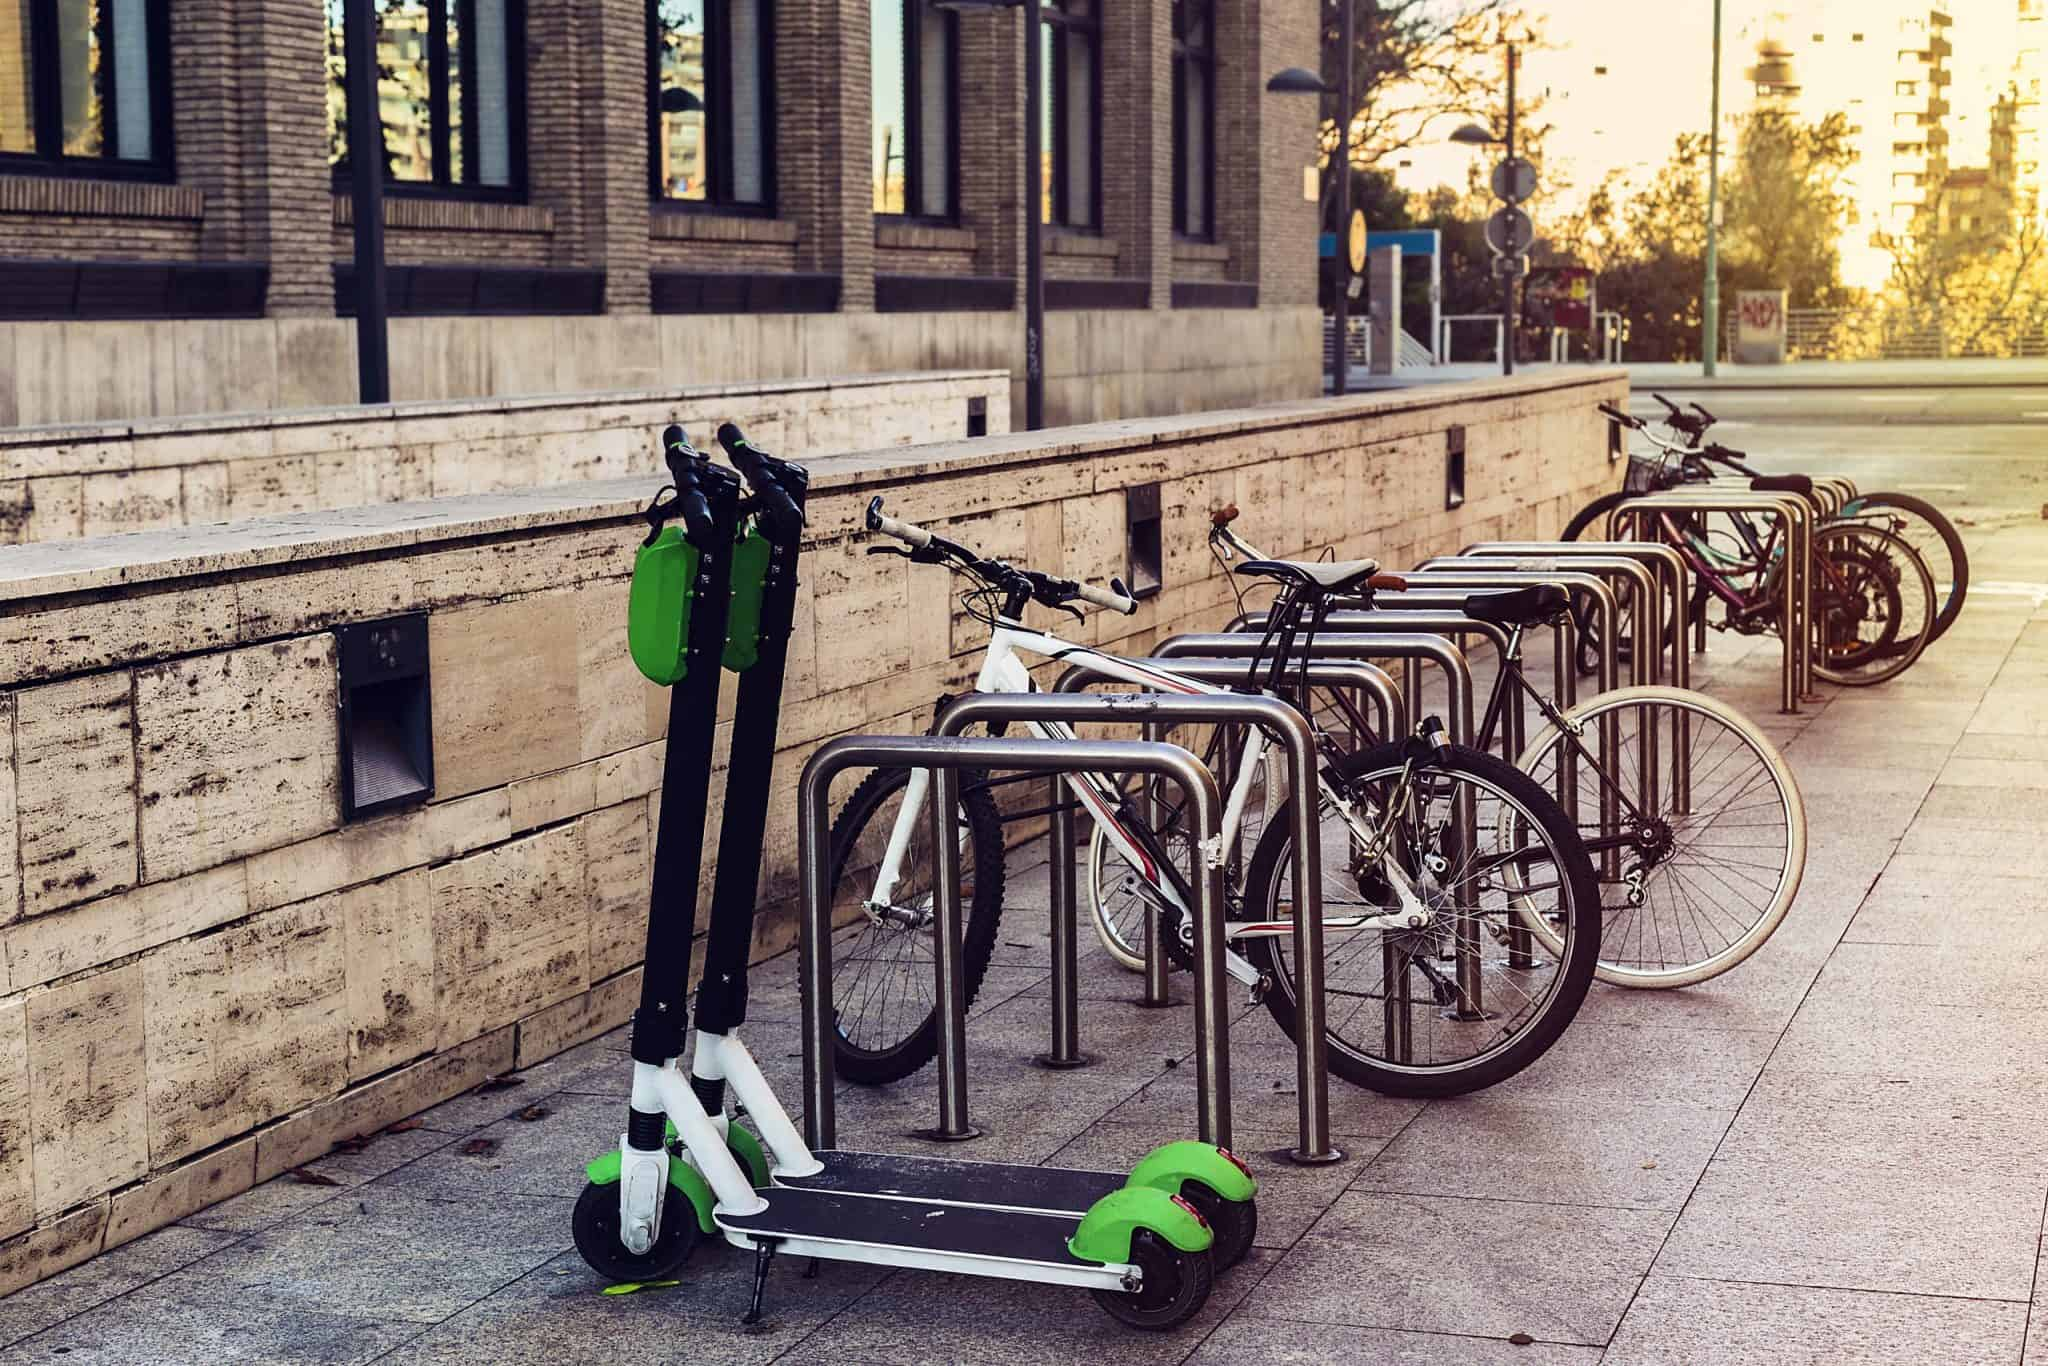 Rental Scooters Parked in Paris